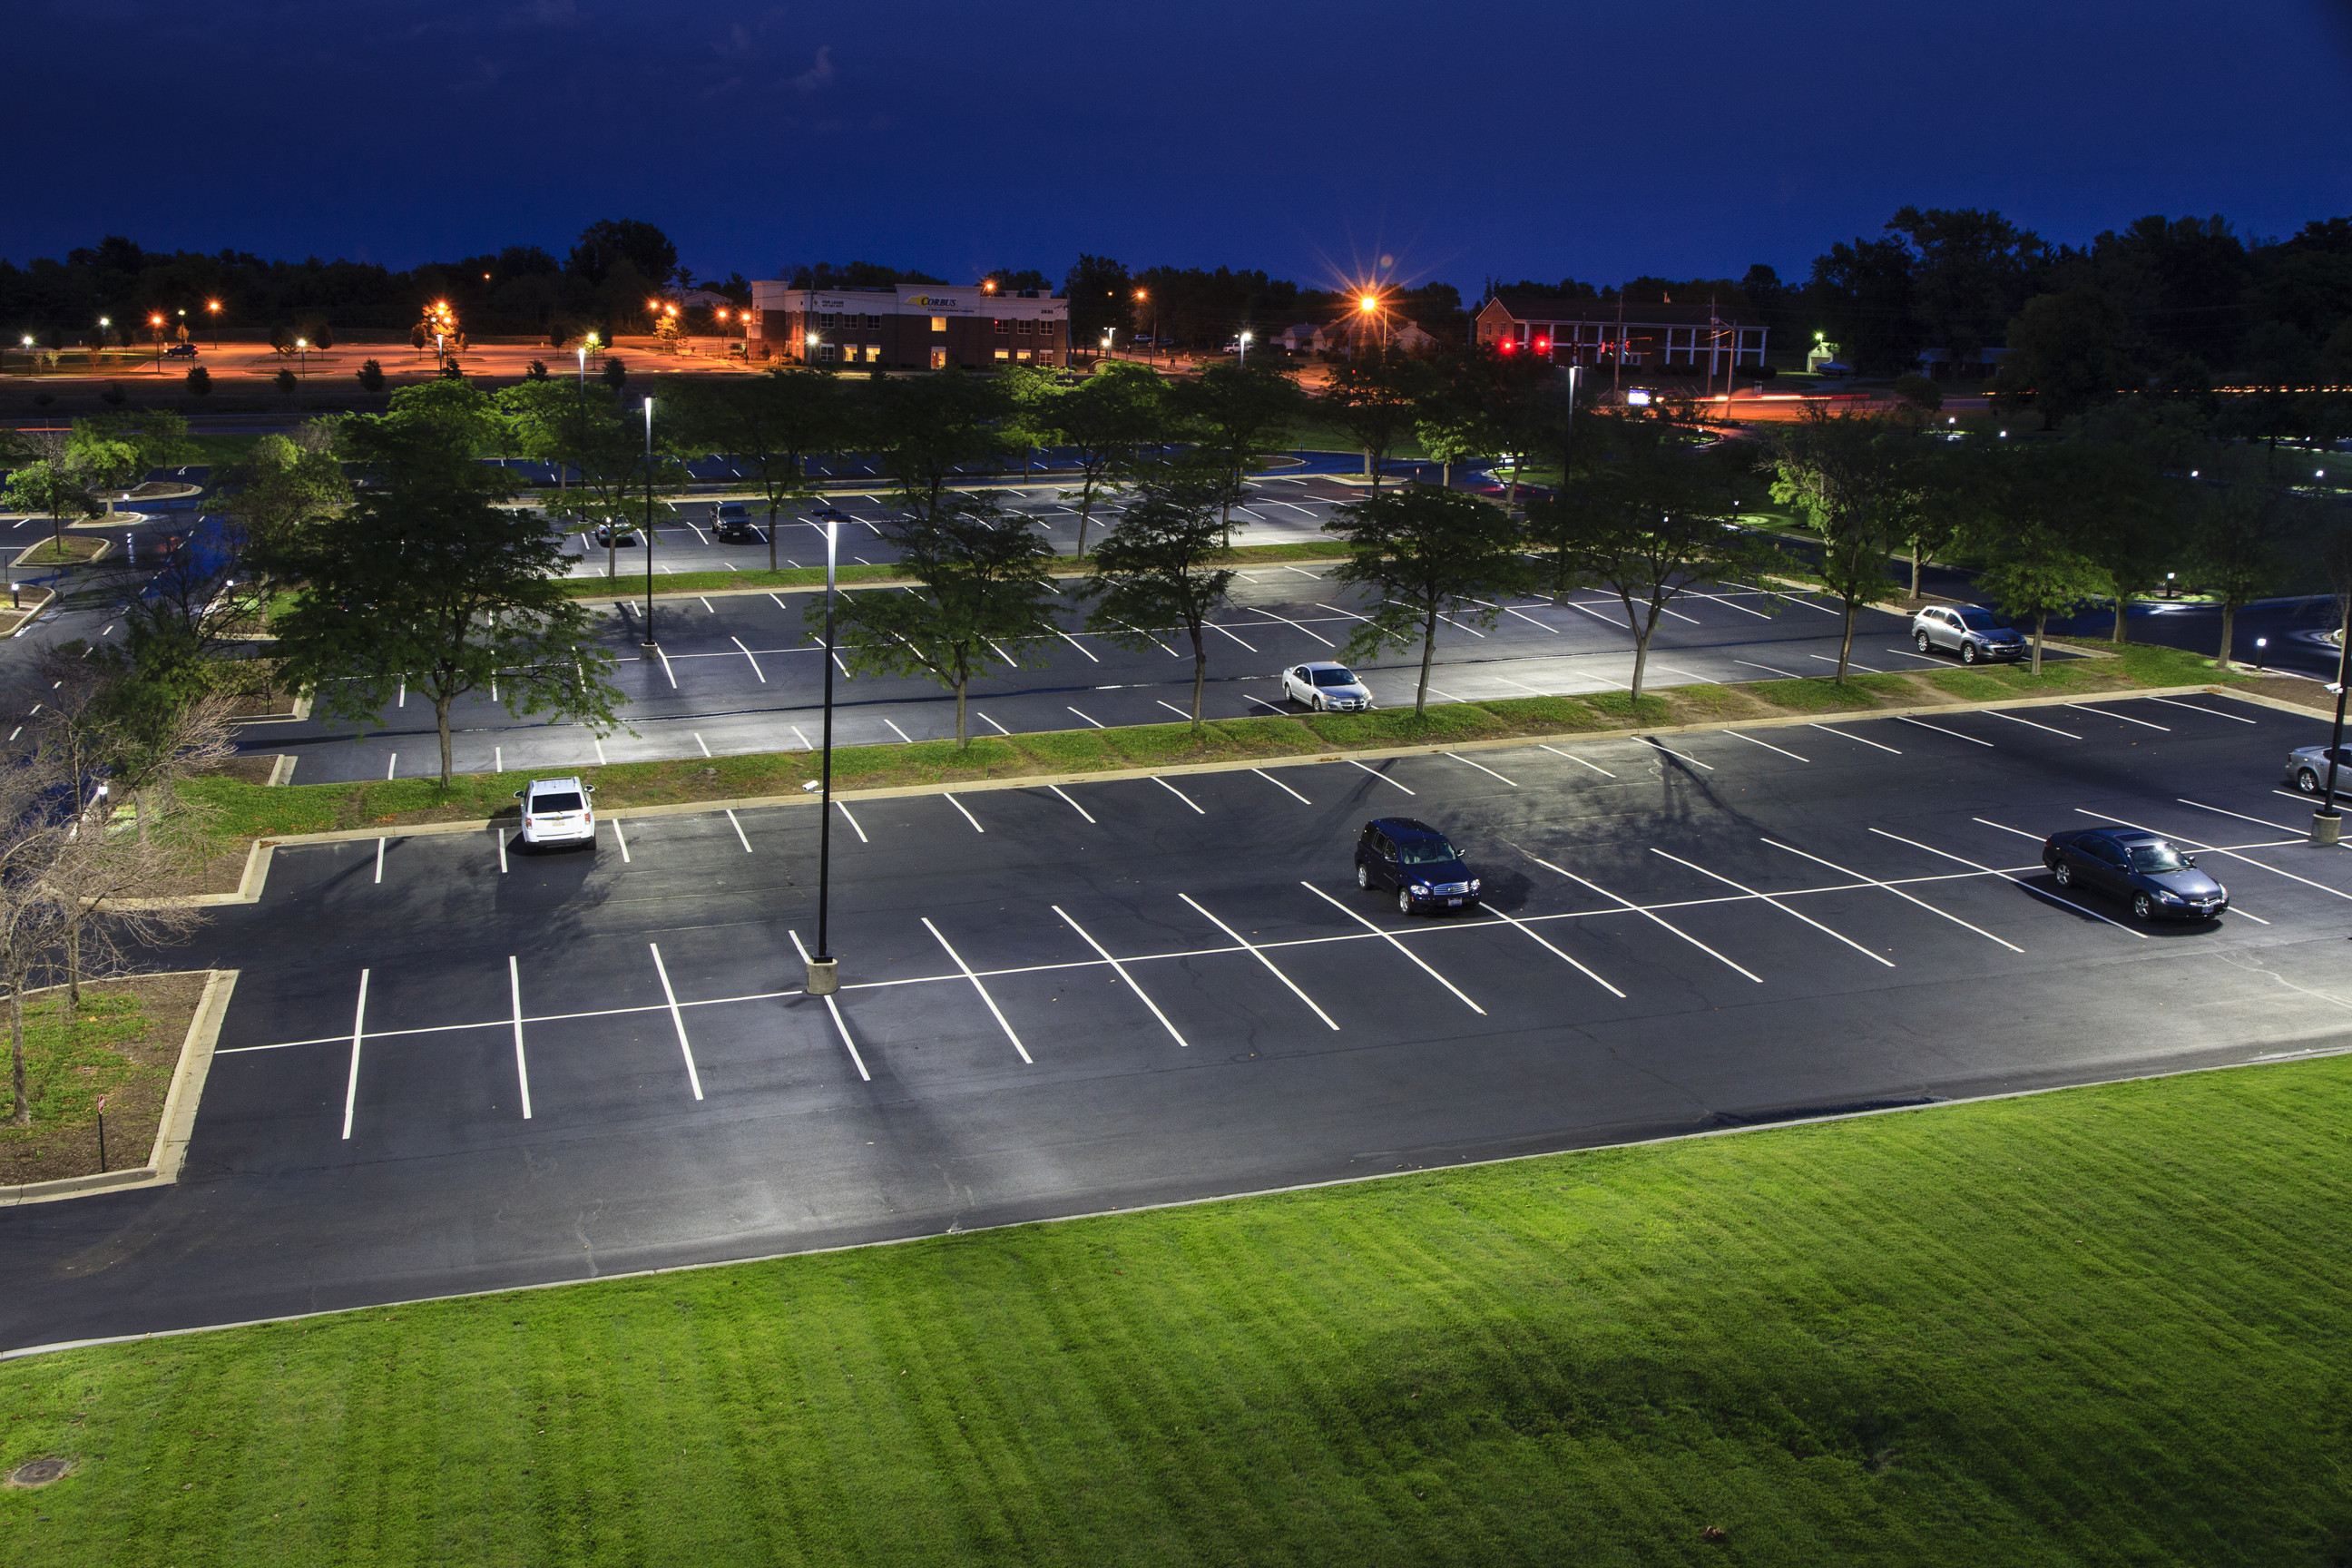 Ge outdoor and office lighting solutions will save metlife nearly after upgrade led outdoor lighting aloadofball Images